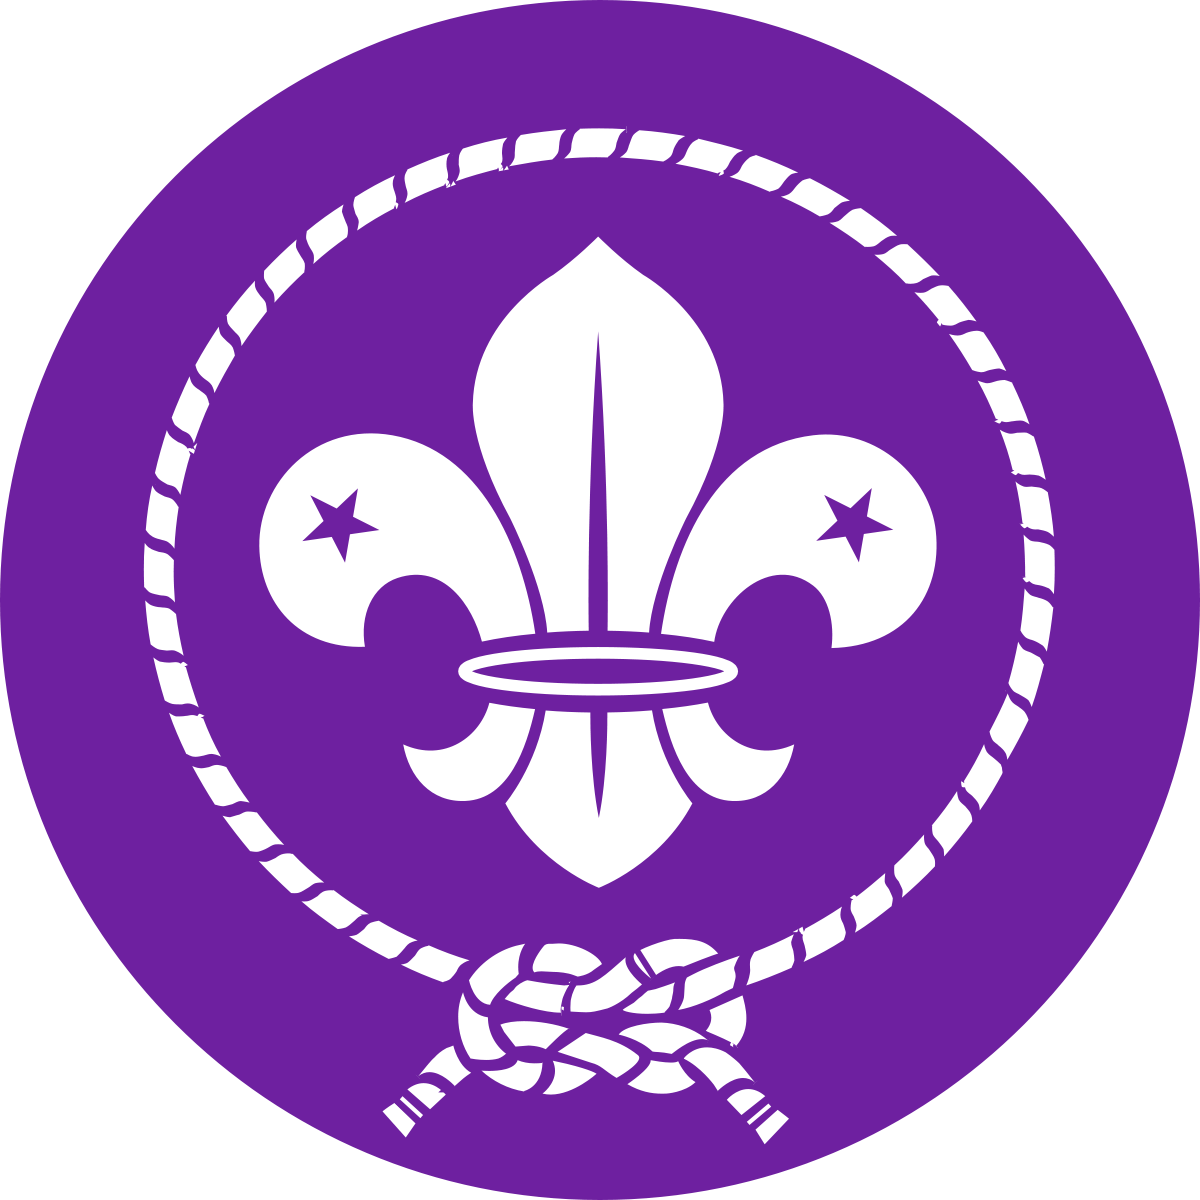 Svg 2 scout symbol. World emblem wikipedia